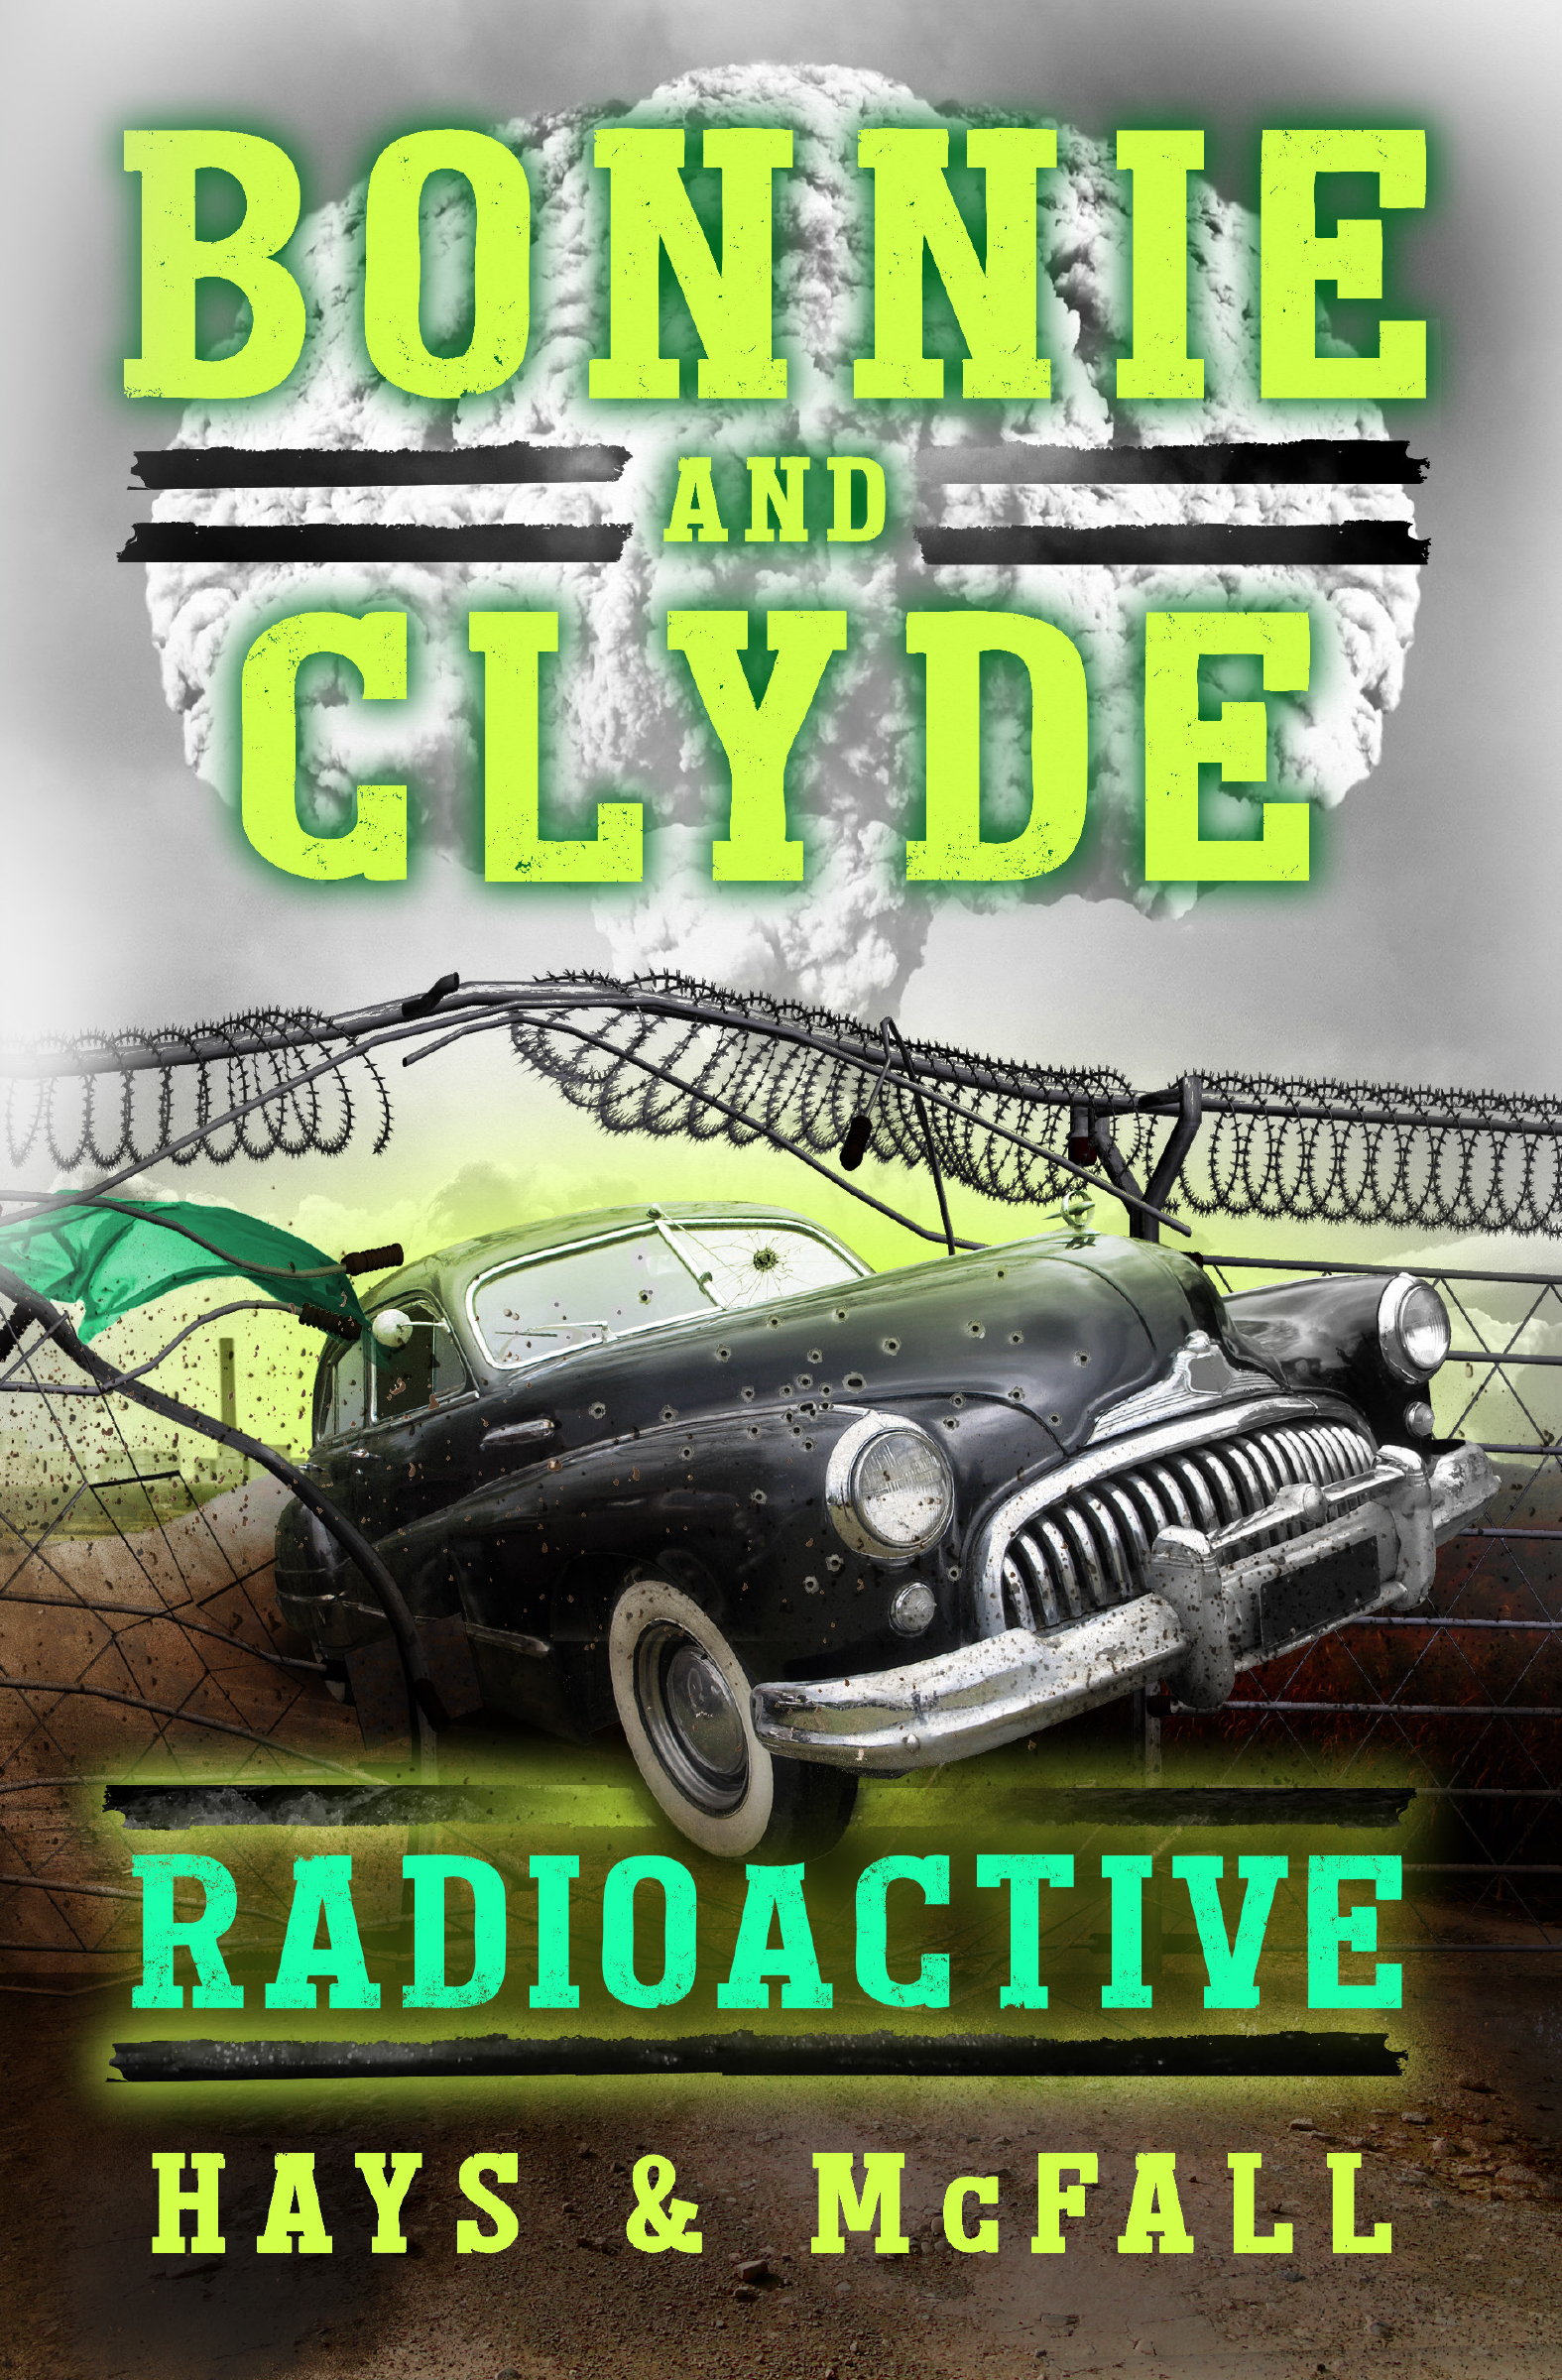 HR Full Size Bonnie and Clyde_ Radioactive Hays and McFall Front Cover.jpg